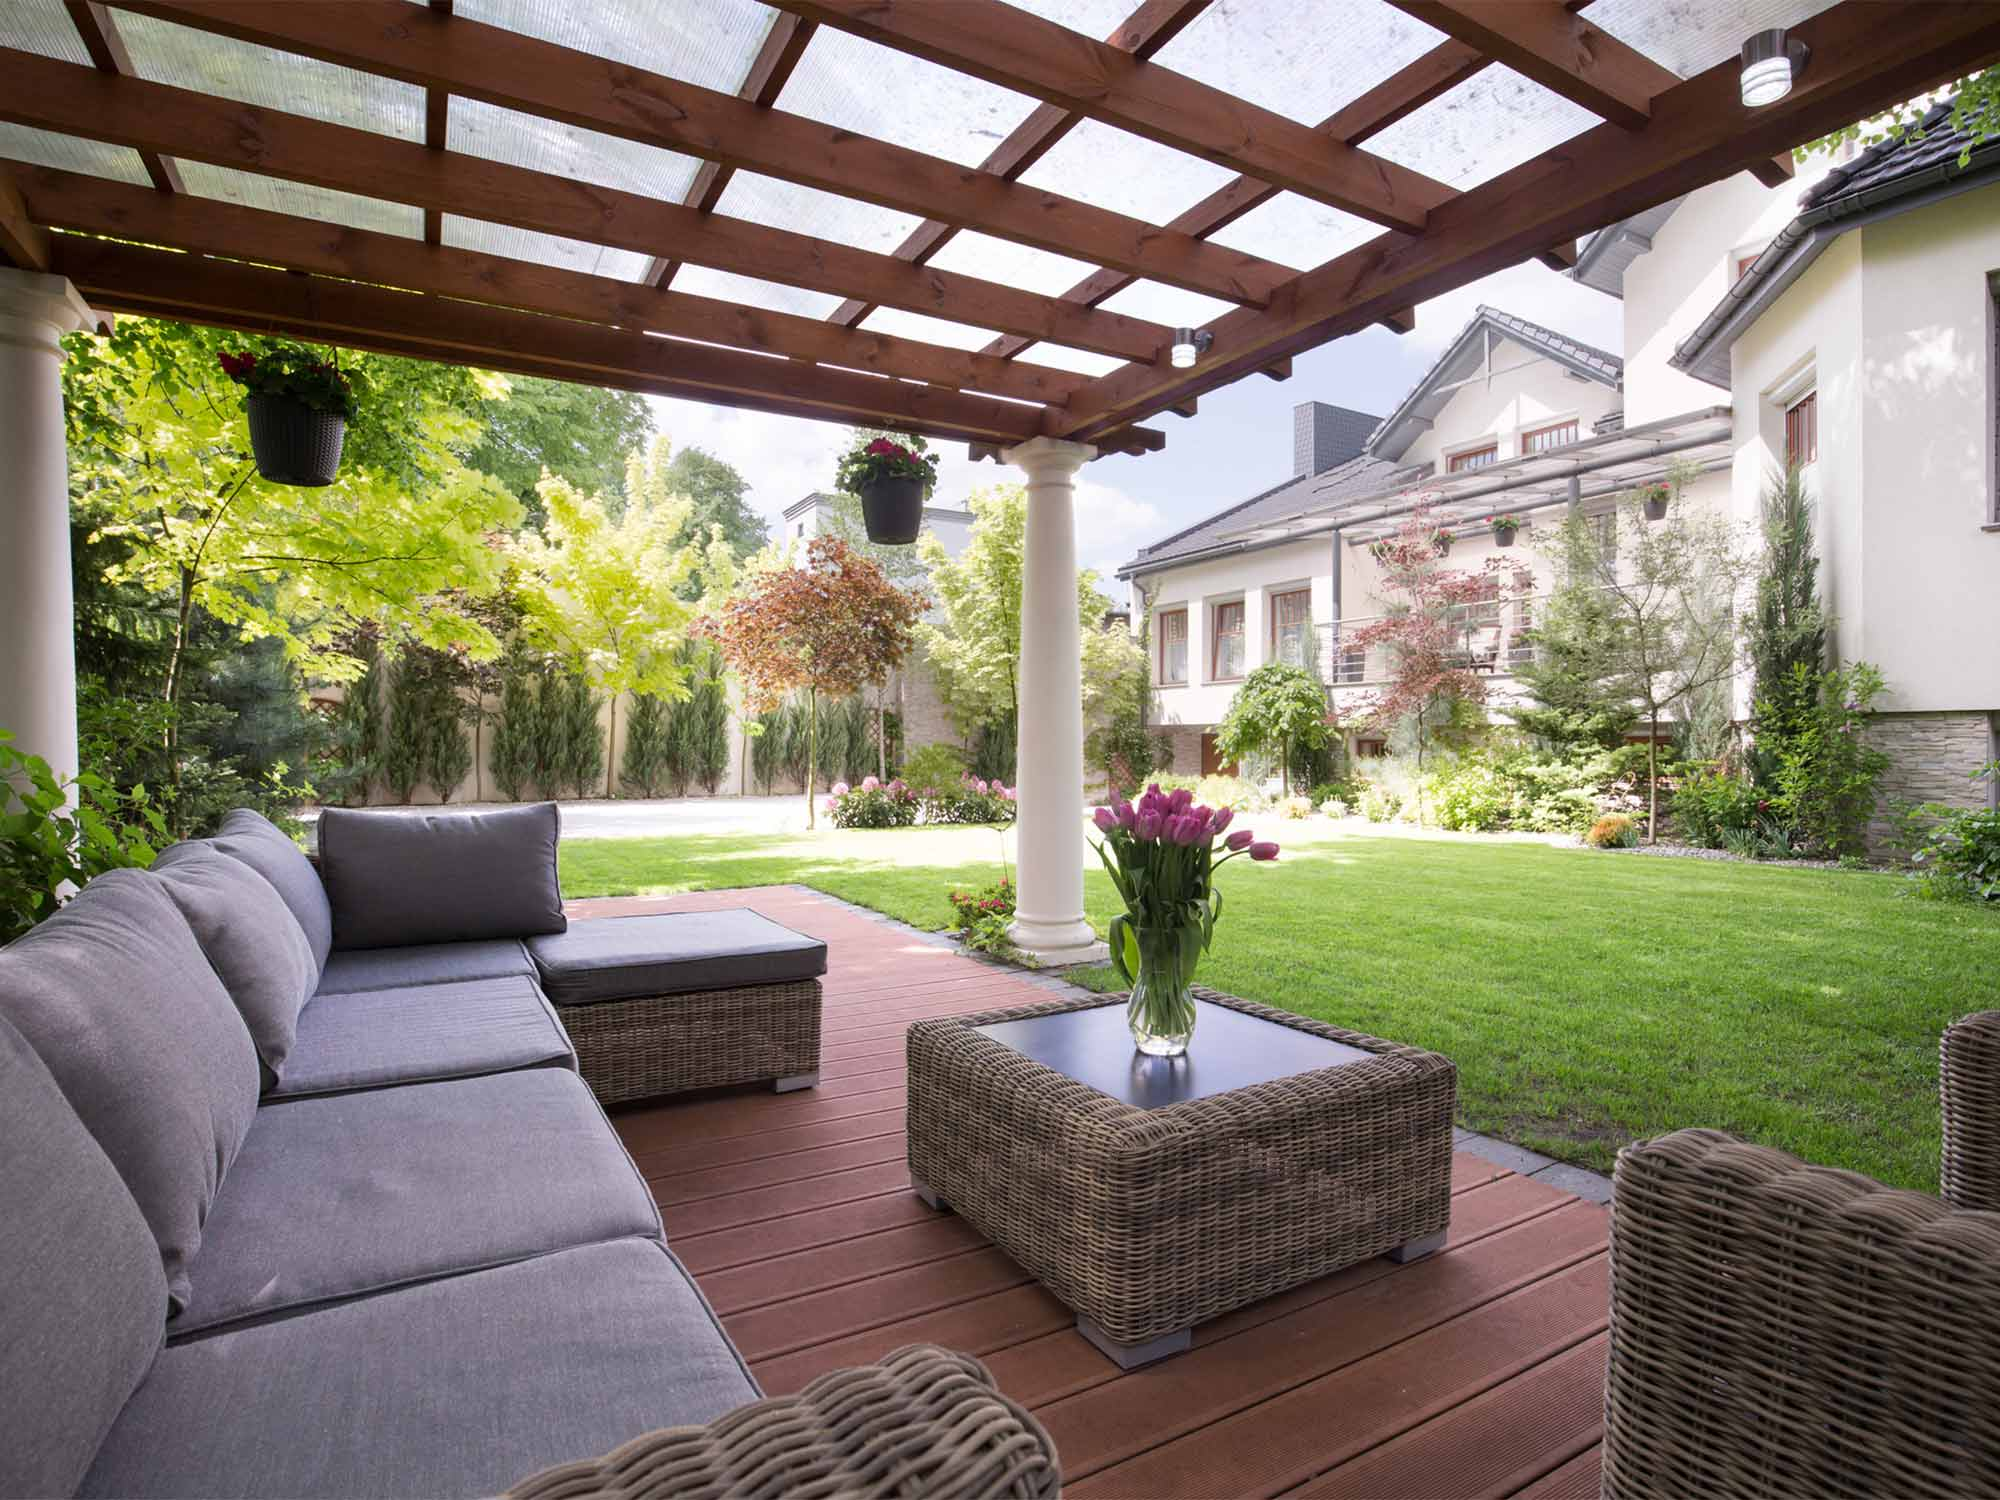 Définition Terrasse Outdoor Area Ideas With Pergola Designs Realestate Au